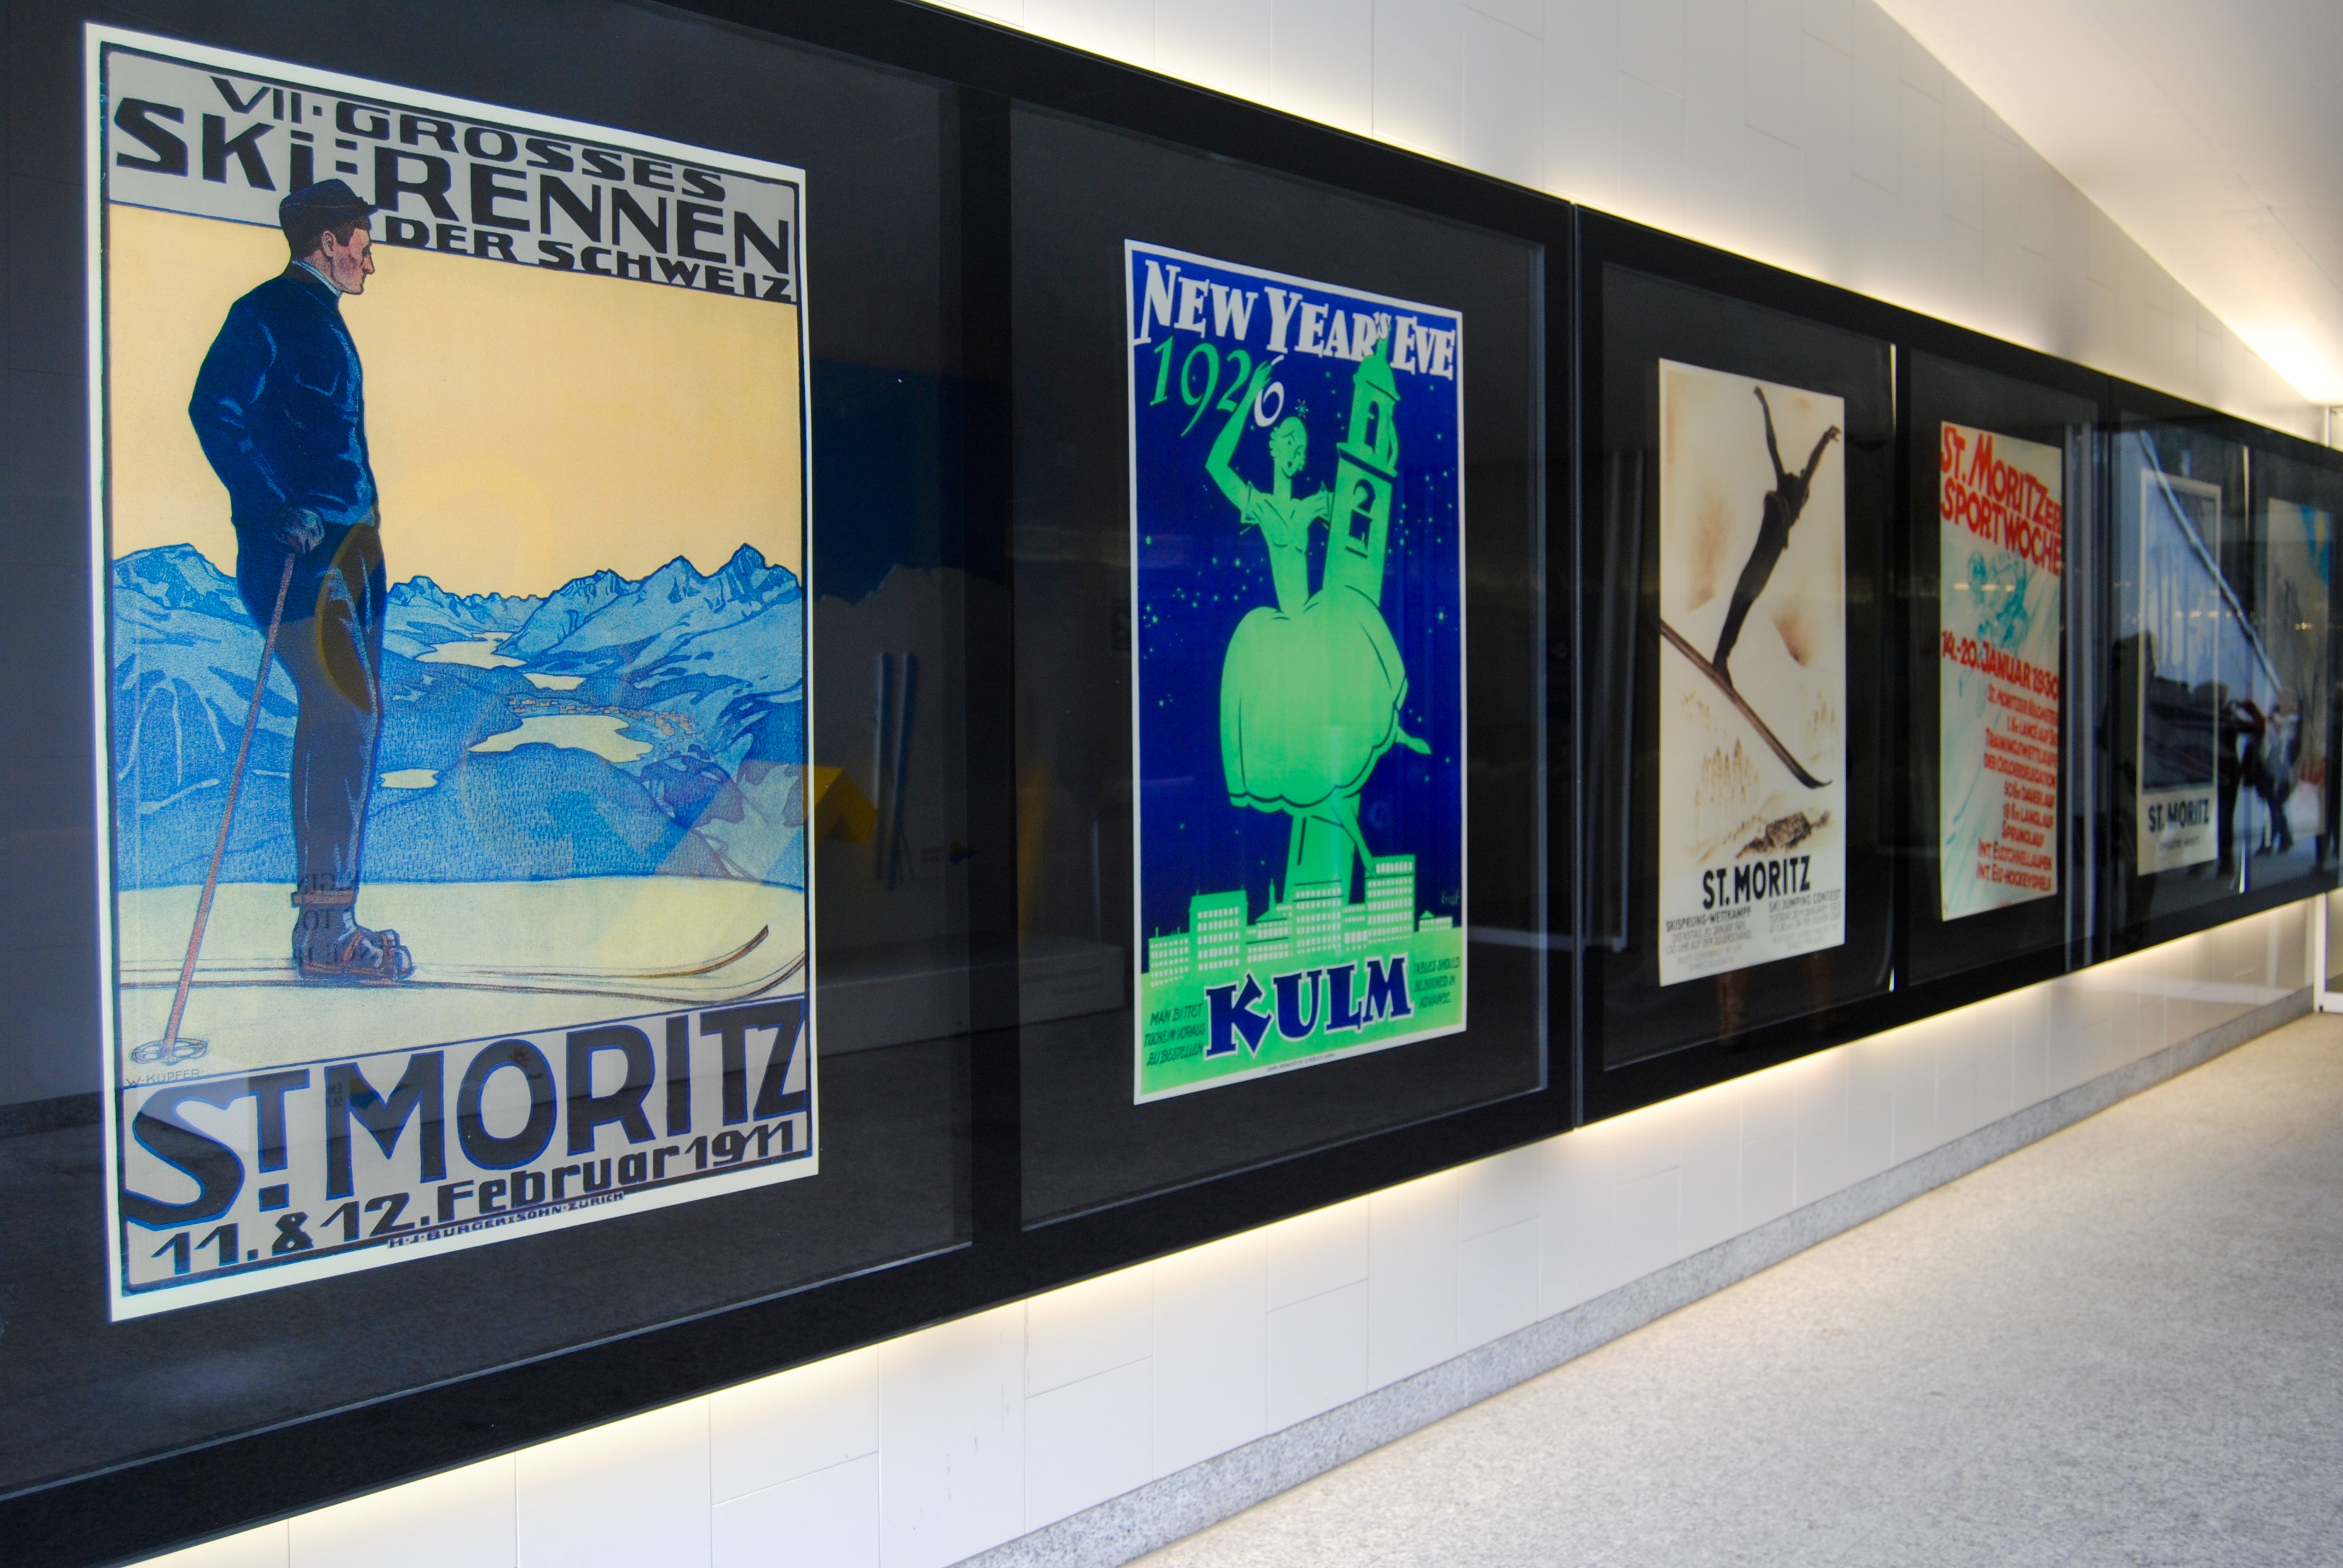 Some of the vintage travel posters inside the hallway leading up to St. Moritz Dorf.